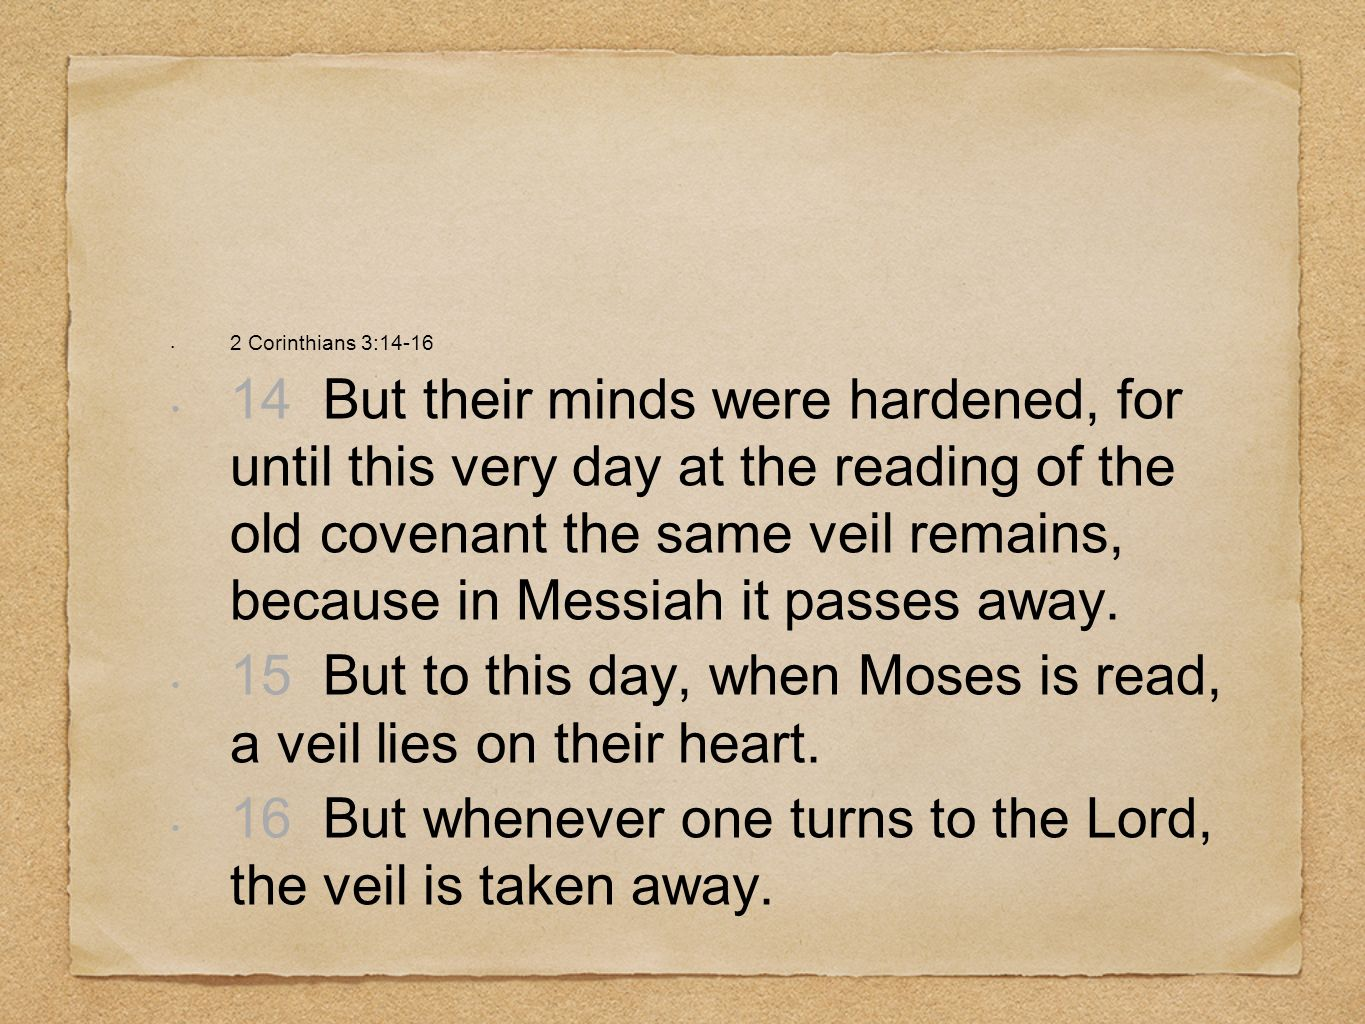 15 But to this day, when Moses is read, a veil lies on their heart.